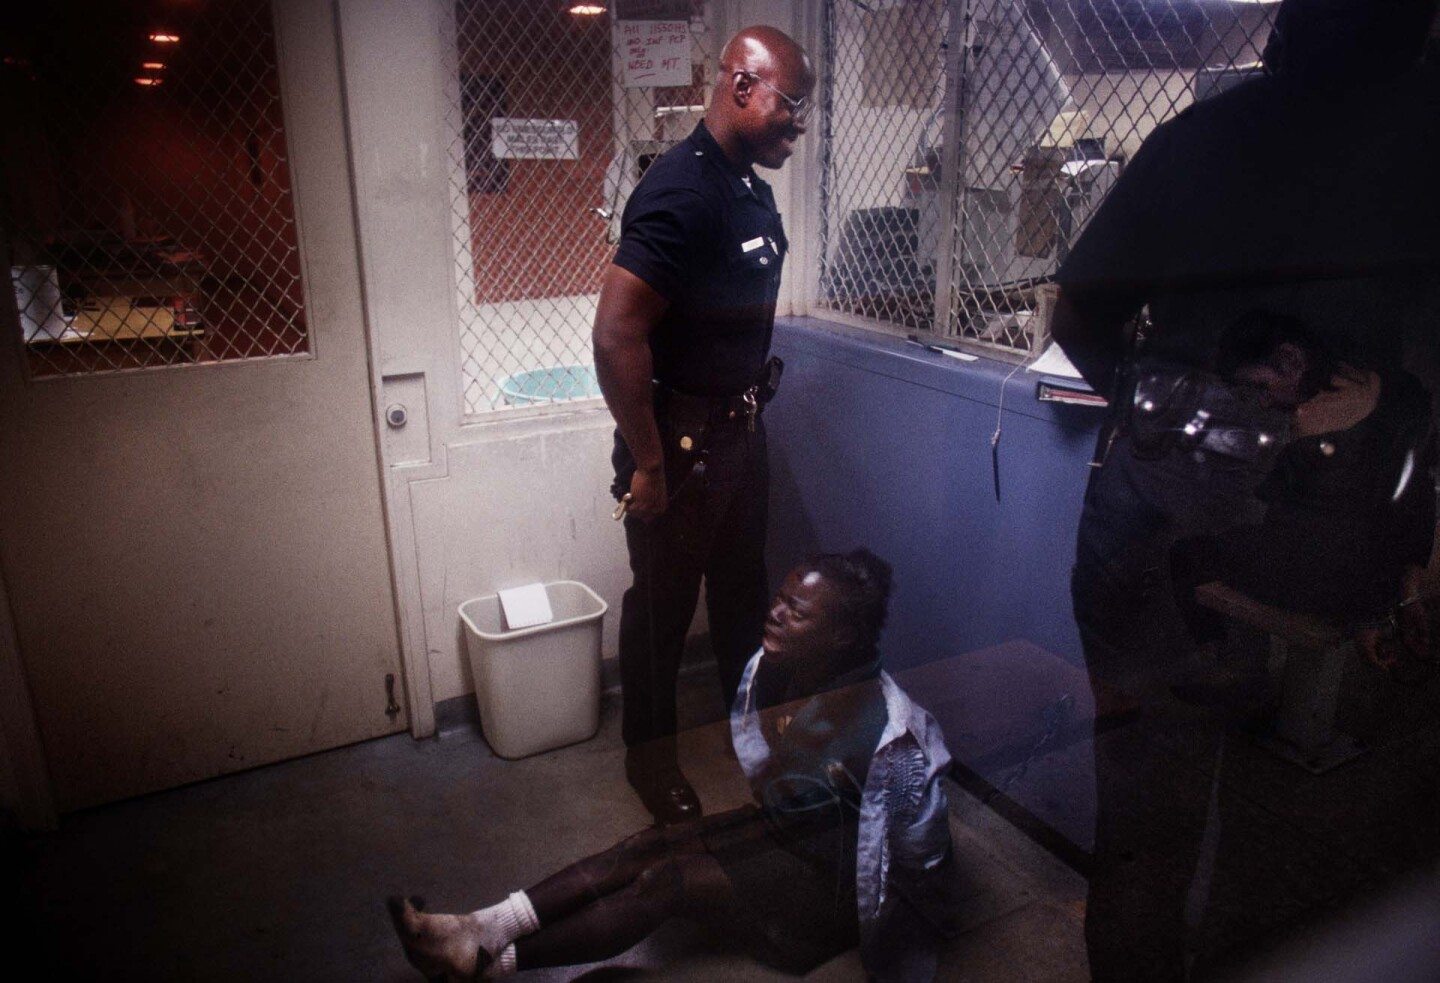 A handcuffed woman is detained and booked at Rampart Station. | Joseph Rodriguez